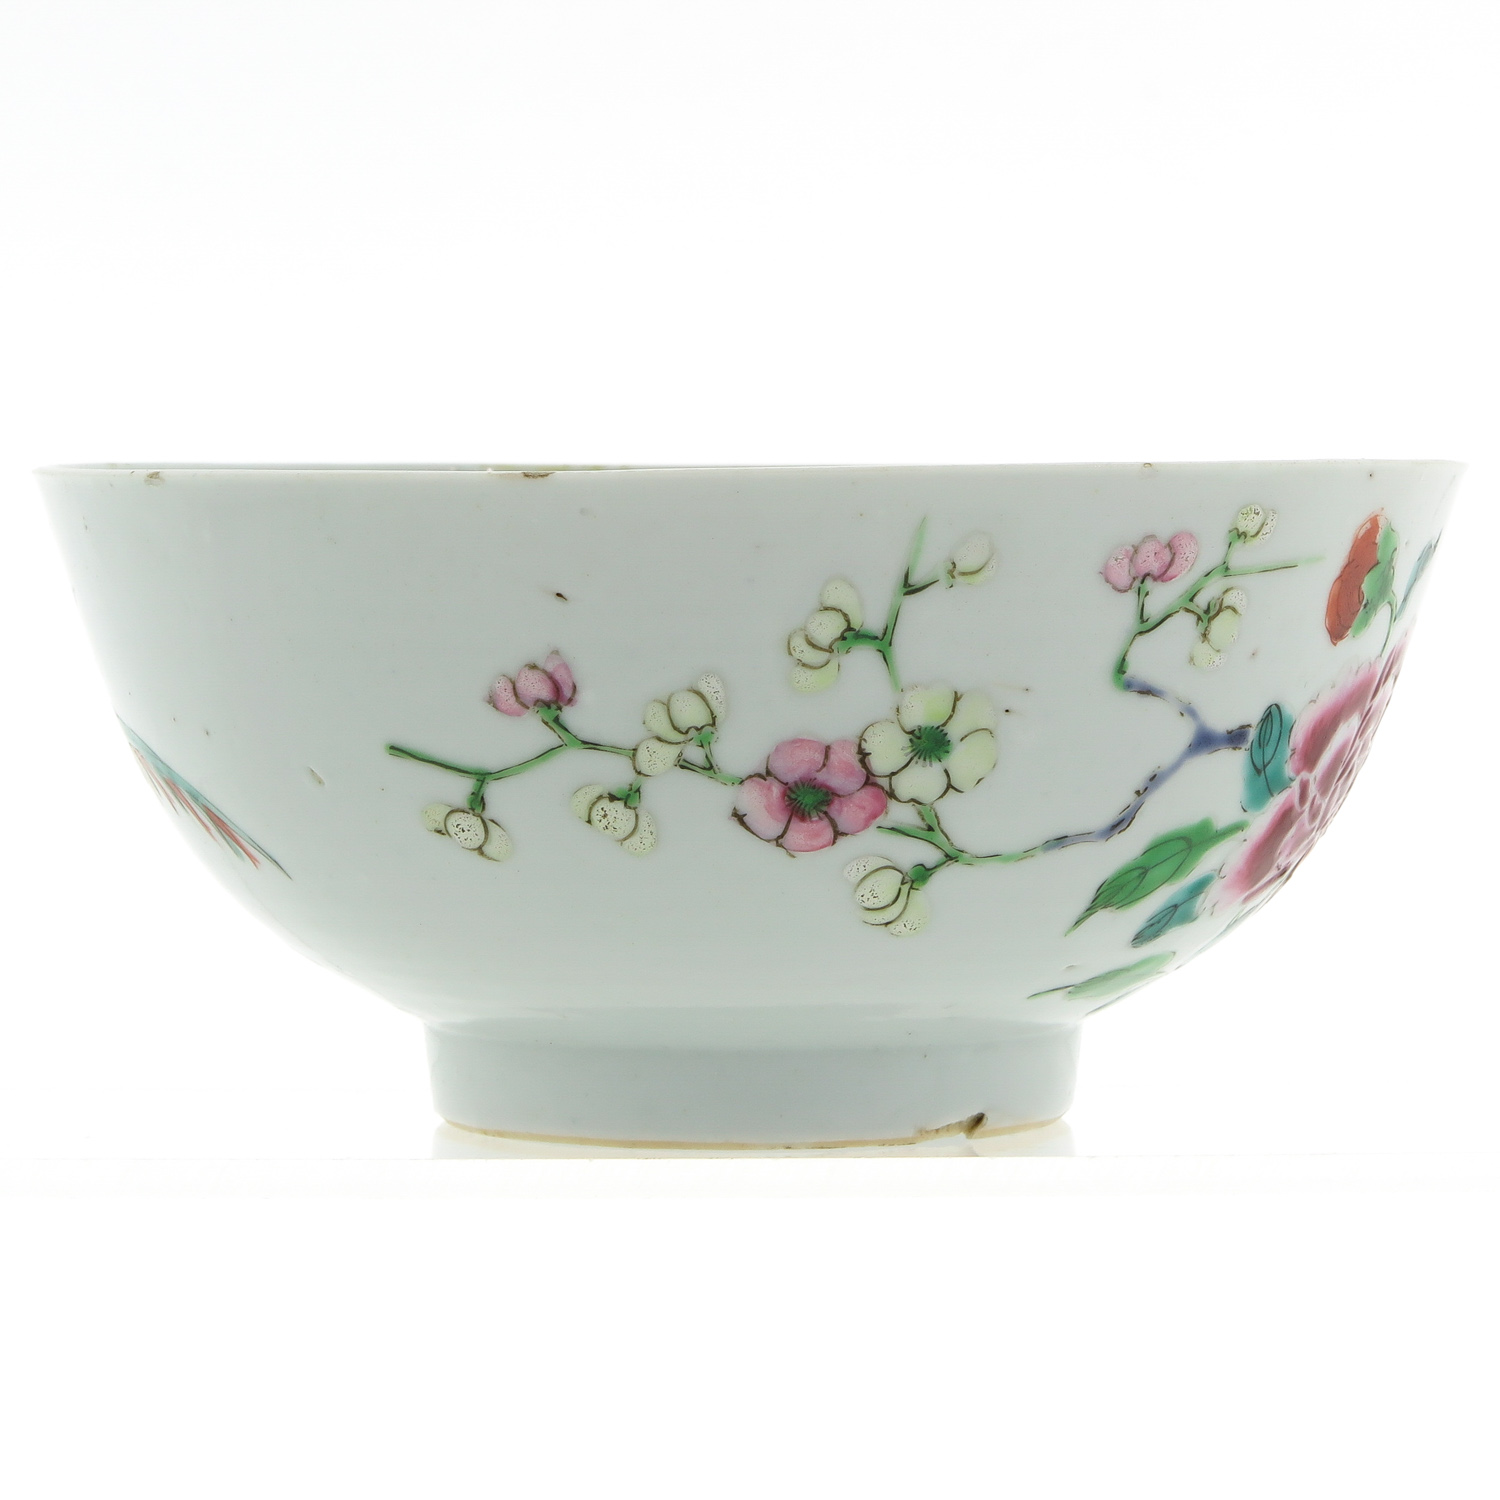 Lot 7055 - A Famille Rose Bowl